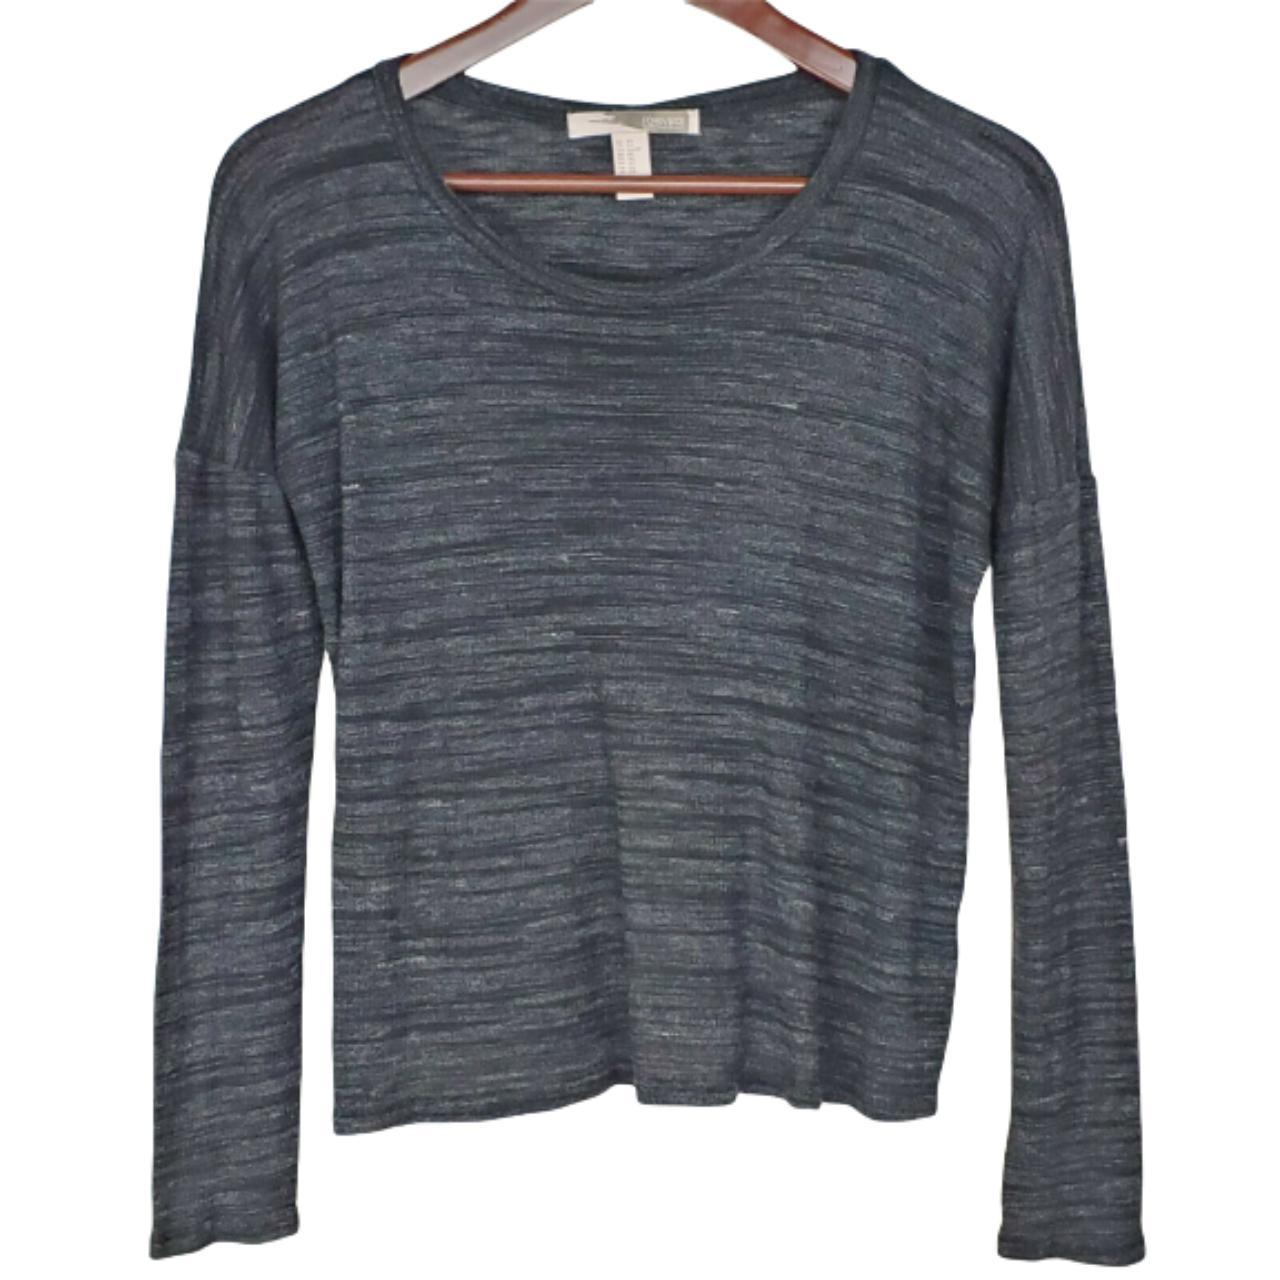 Product Image 1 - Brand: Forever 21 Item: Top Size: Women's